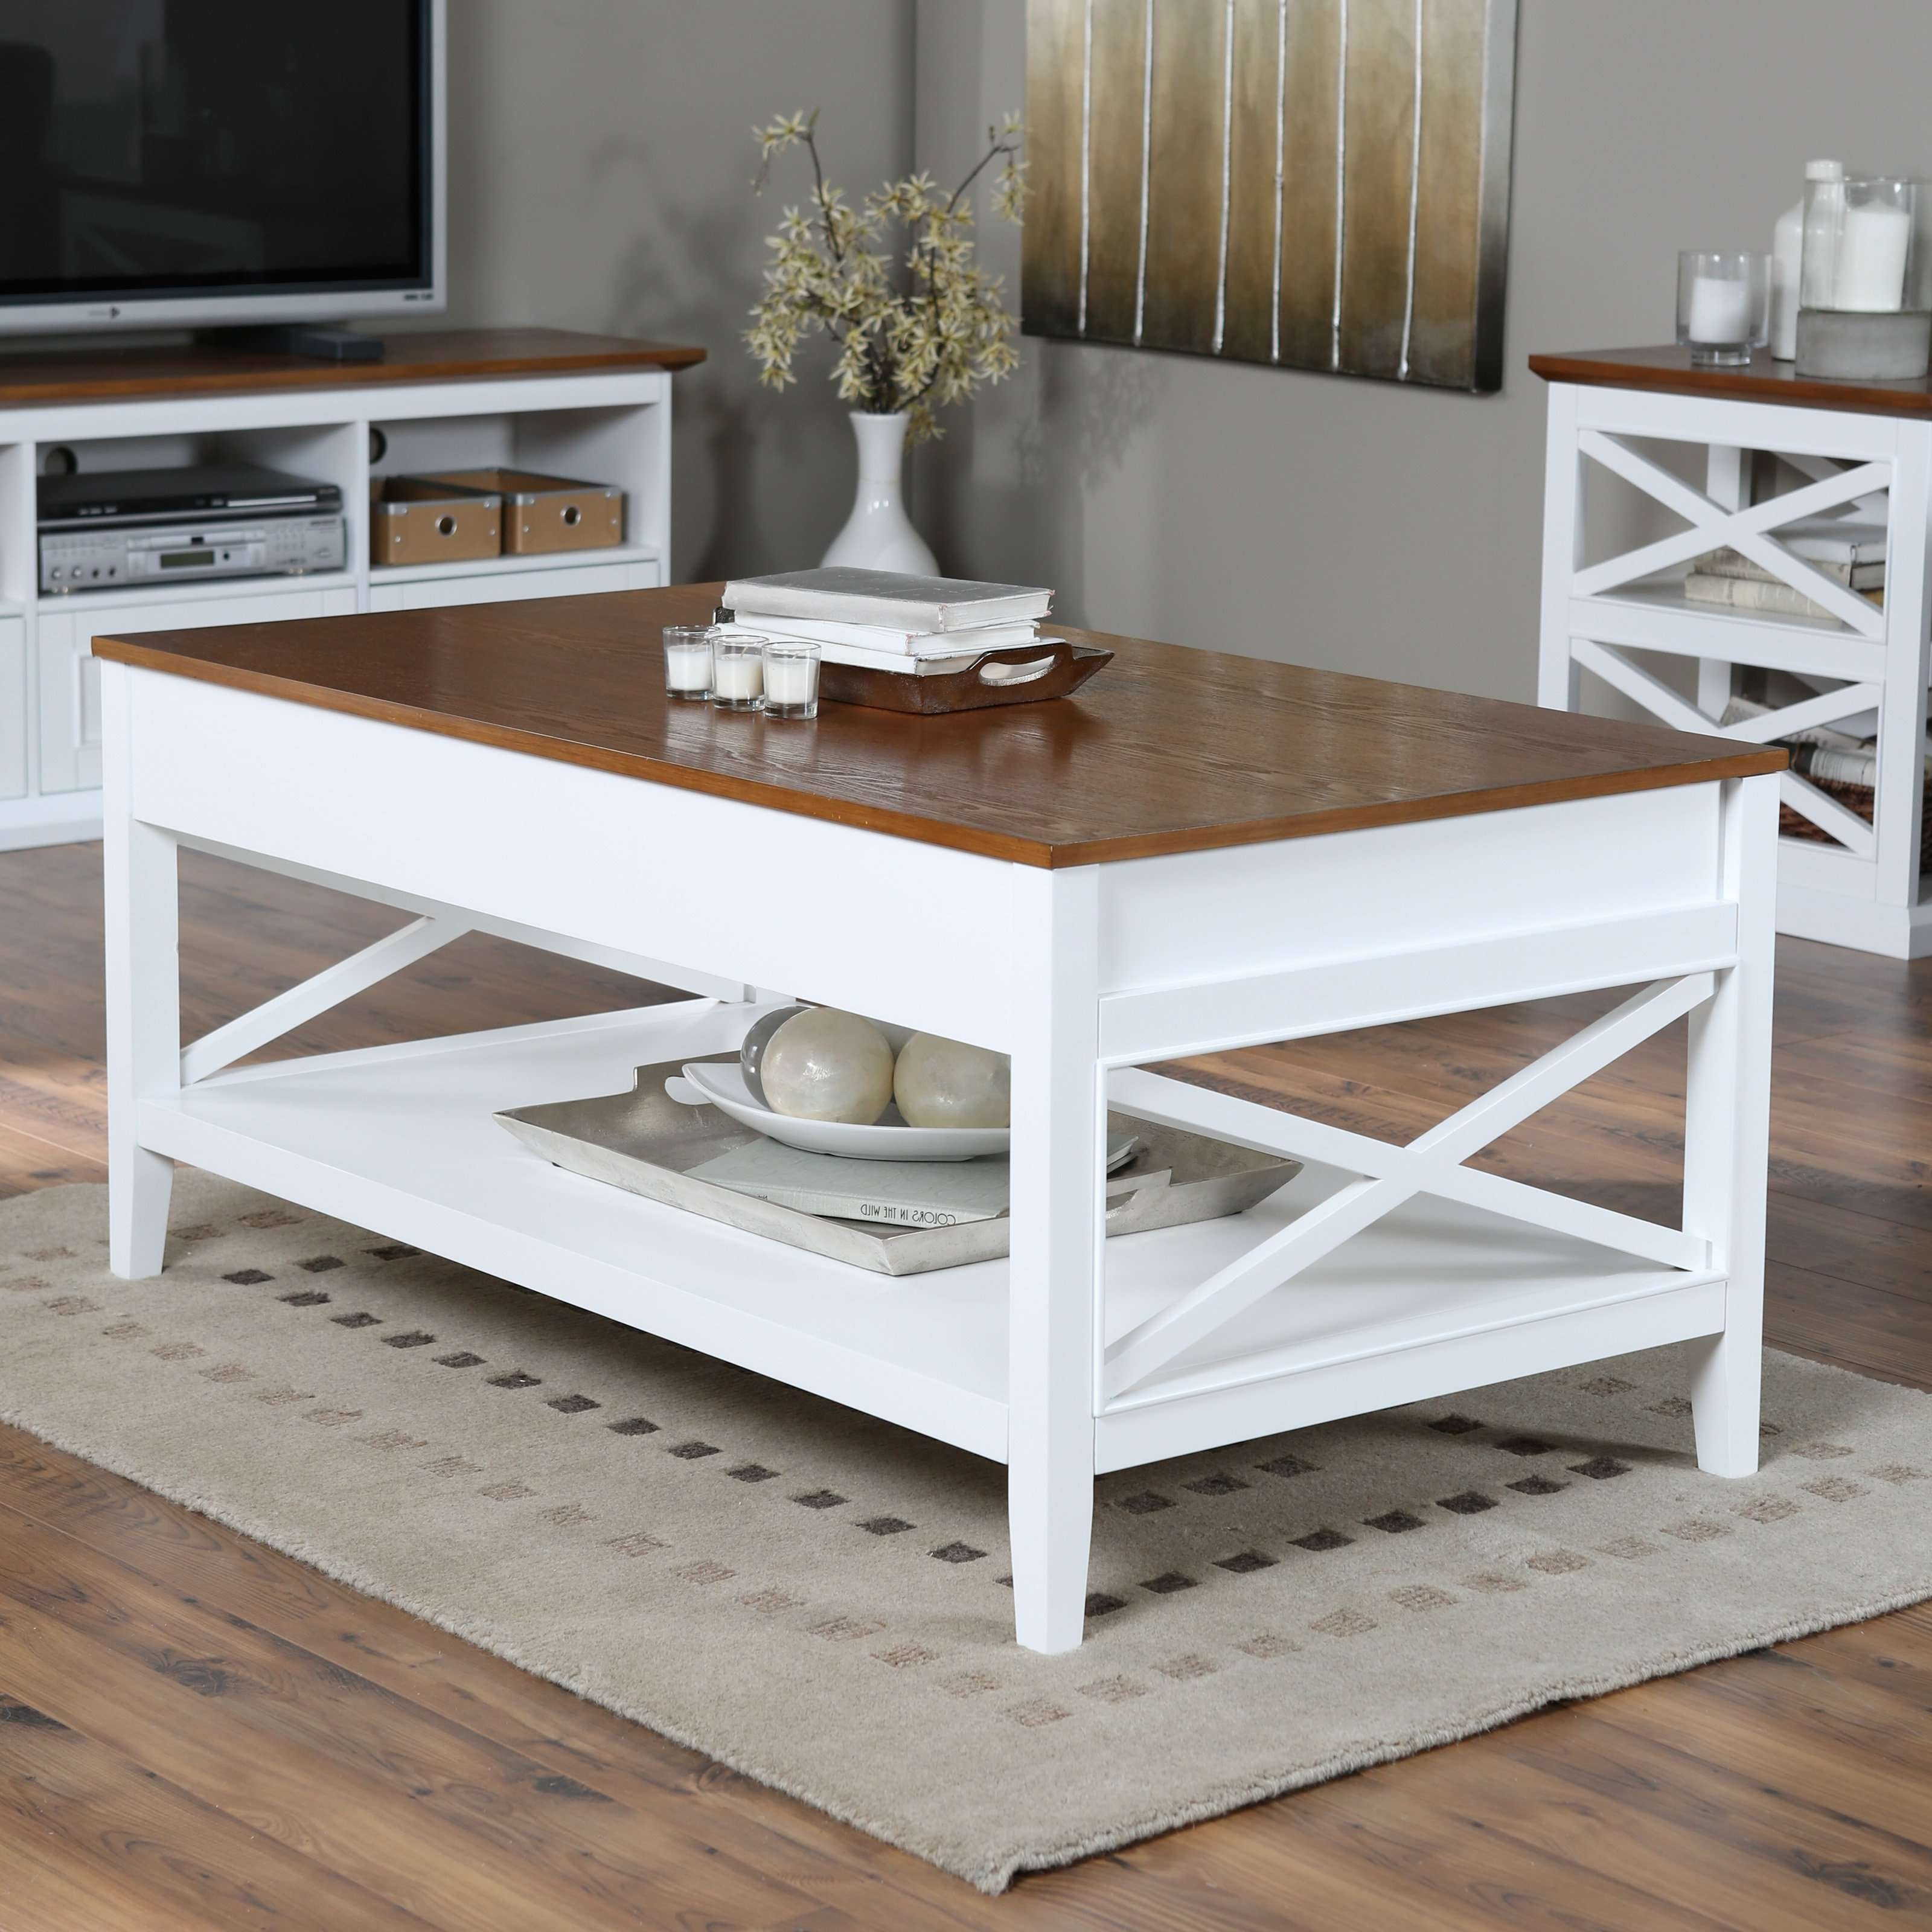 Newest Cream Coffee Tables With Drawers Regarding Coffee Tables : Storage Table High Gloss White Coffee With Drawers (View 8 of 20)